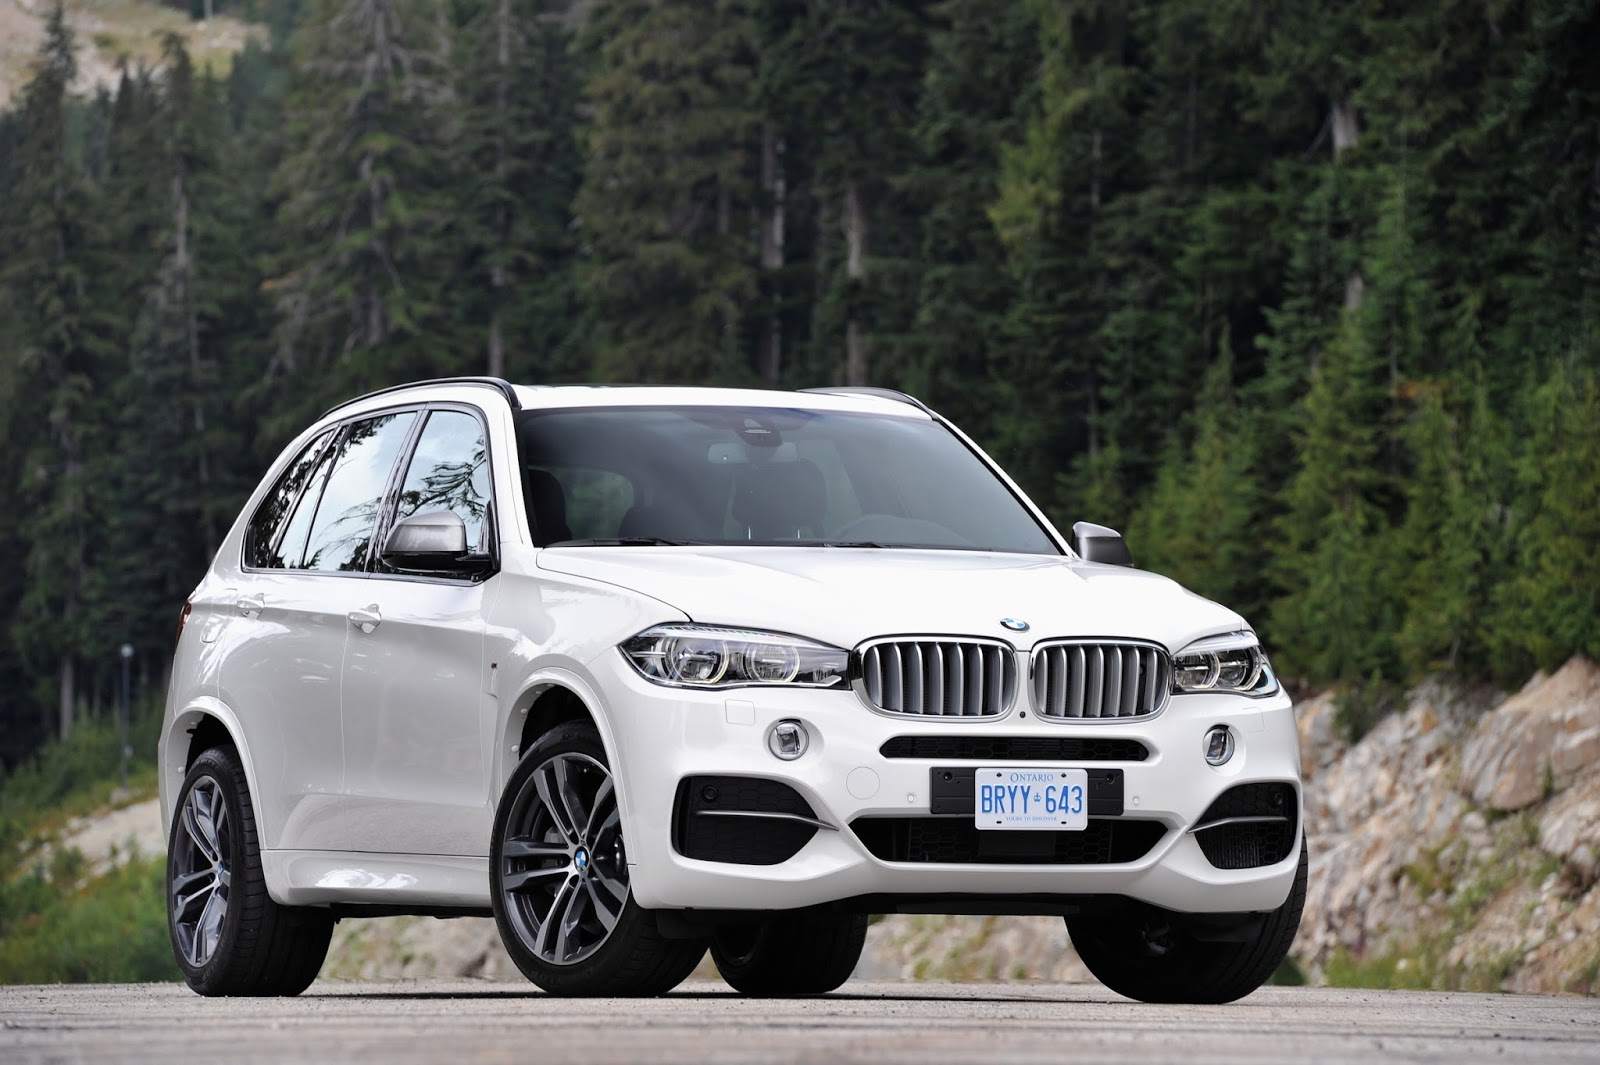 Image of 2014 bmw x5 m50d f15 m sportpaket weiss triturbo diesel suv - Bmw X5 M50d Enthralling Dynamics Thanks To Trademark M Precision